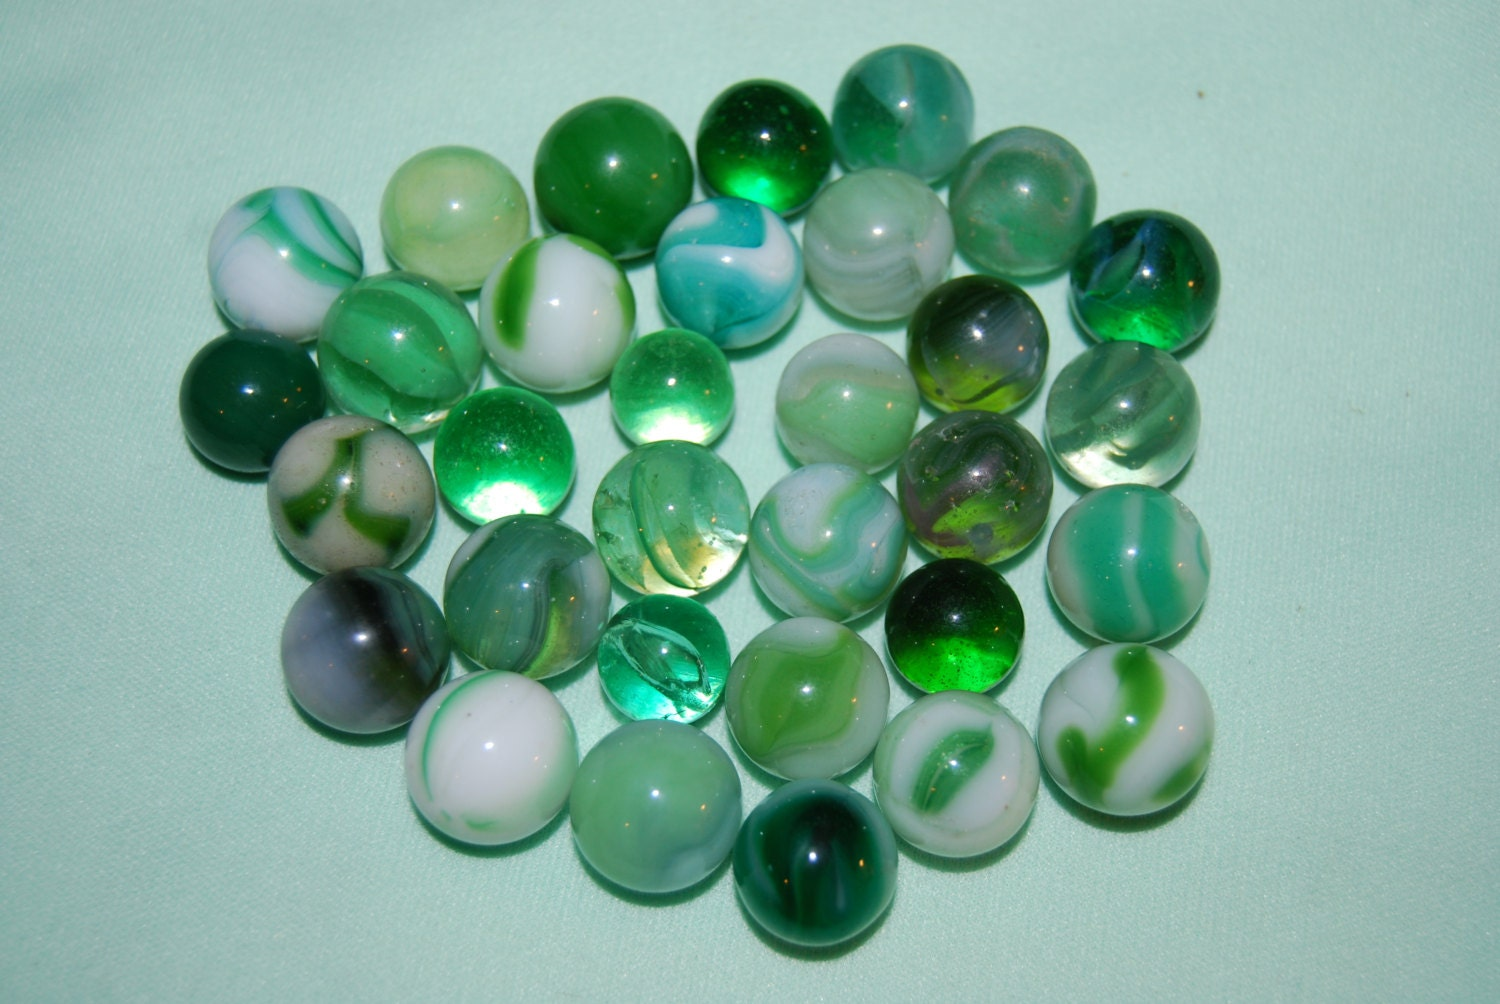 Green Glass Marble : Old vintage glass marbles lot green